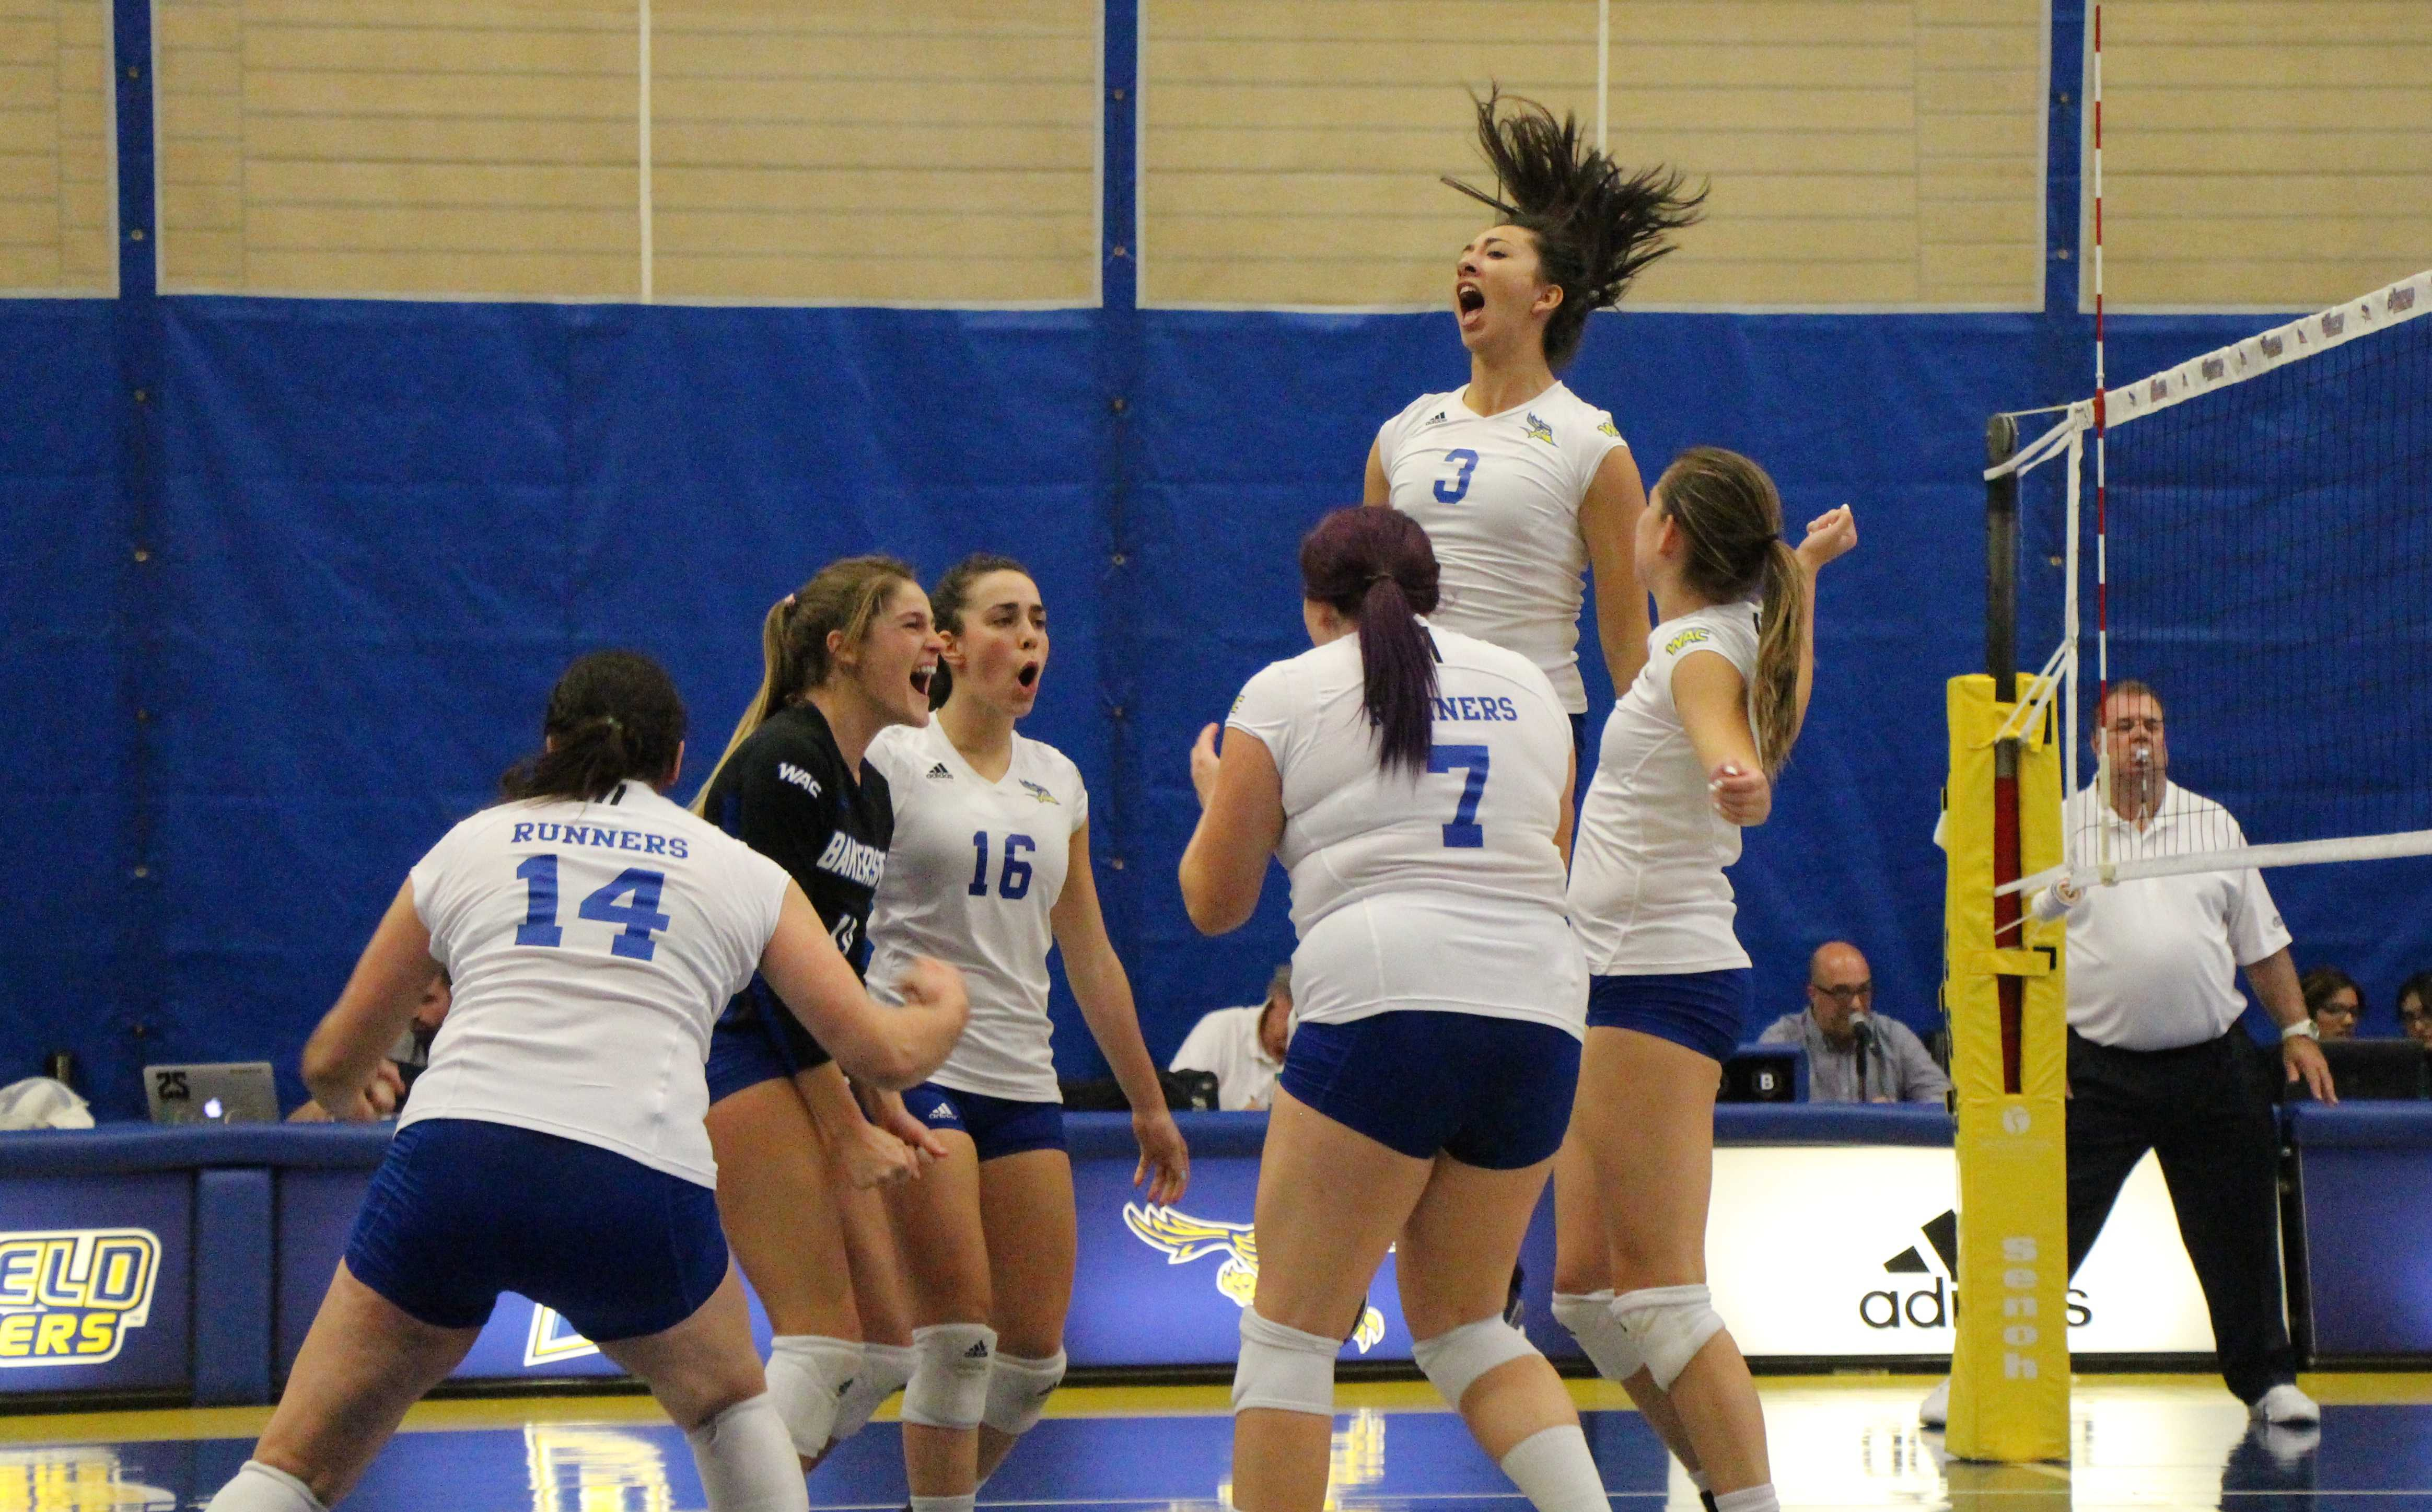 CSUB volleyball wins fourth straight match